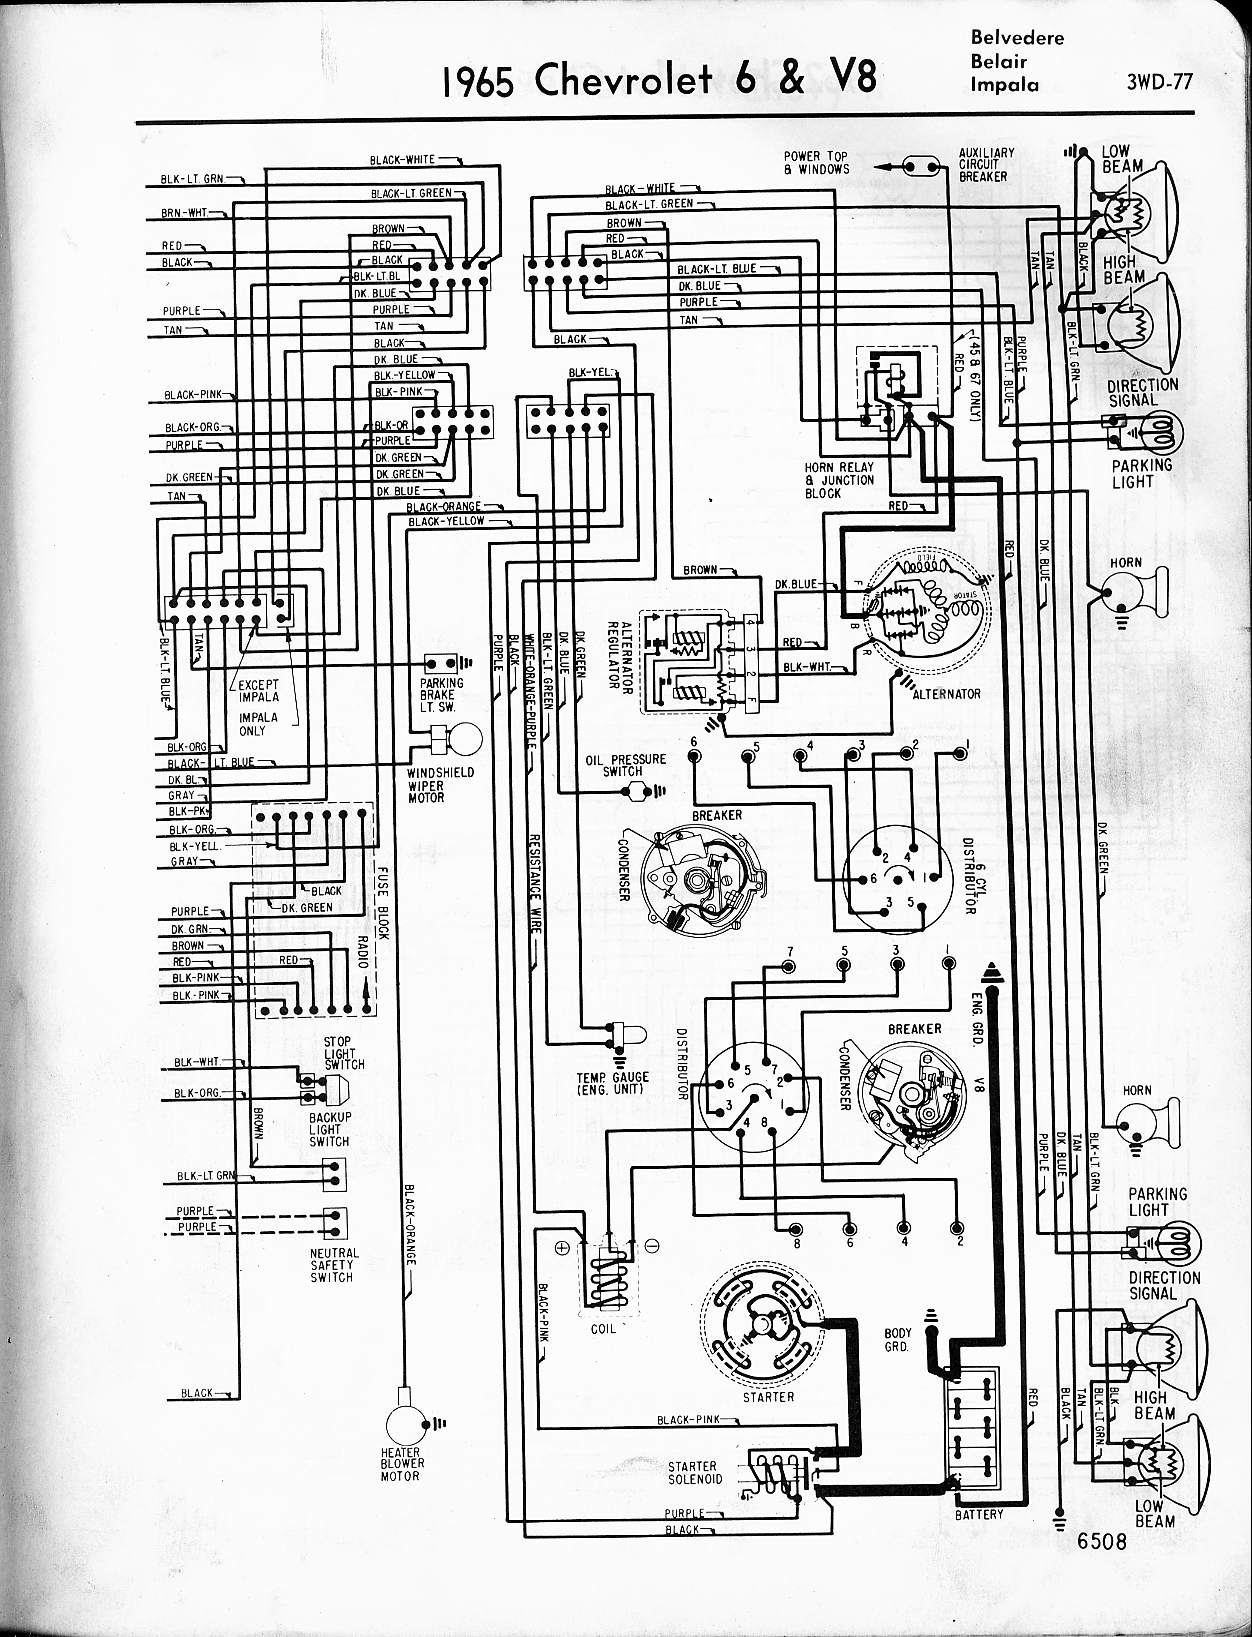 Magnificent 1967 Chevelle Wiring Diagram Basic Electronics Wiring Diagram Wiring Cloud Hemtegremohammedshrineorg